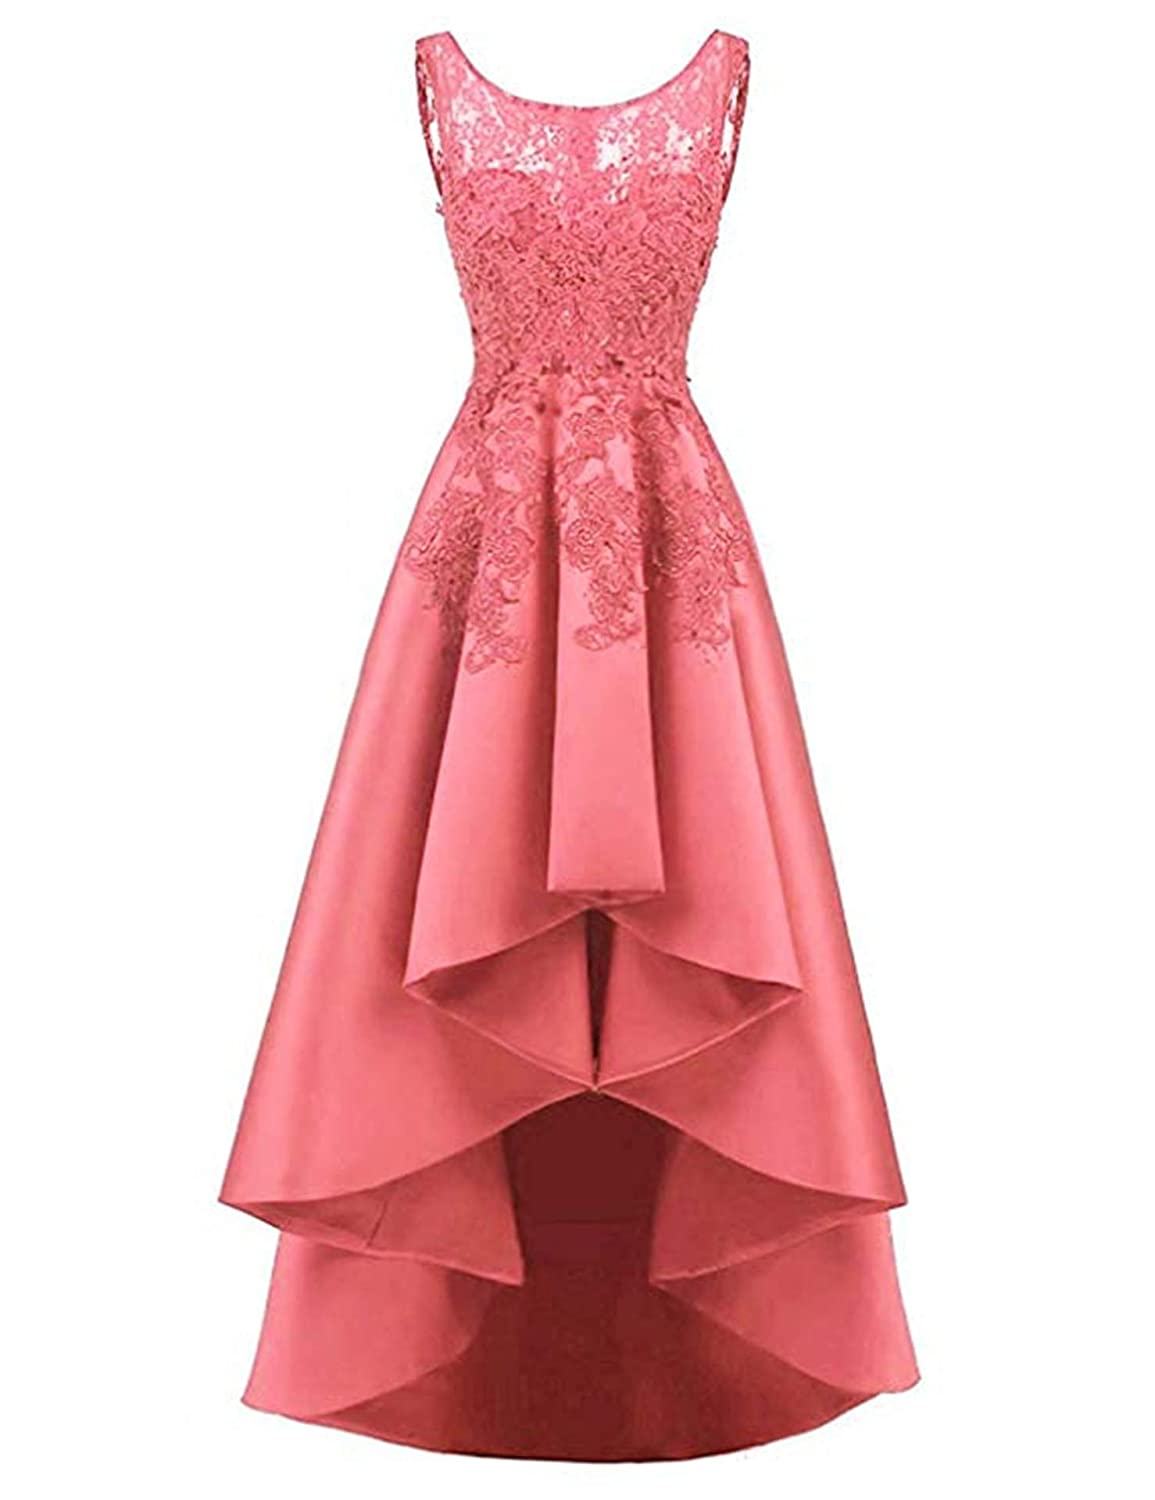 Coral QiJunGe Women's High Low Prom Dress Lace Satin A Line Evening Formal Gowns